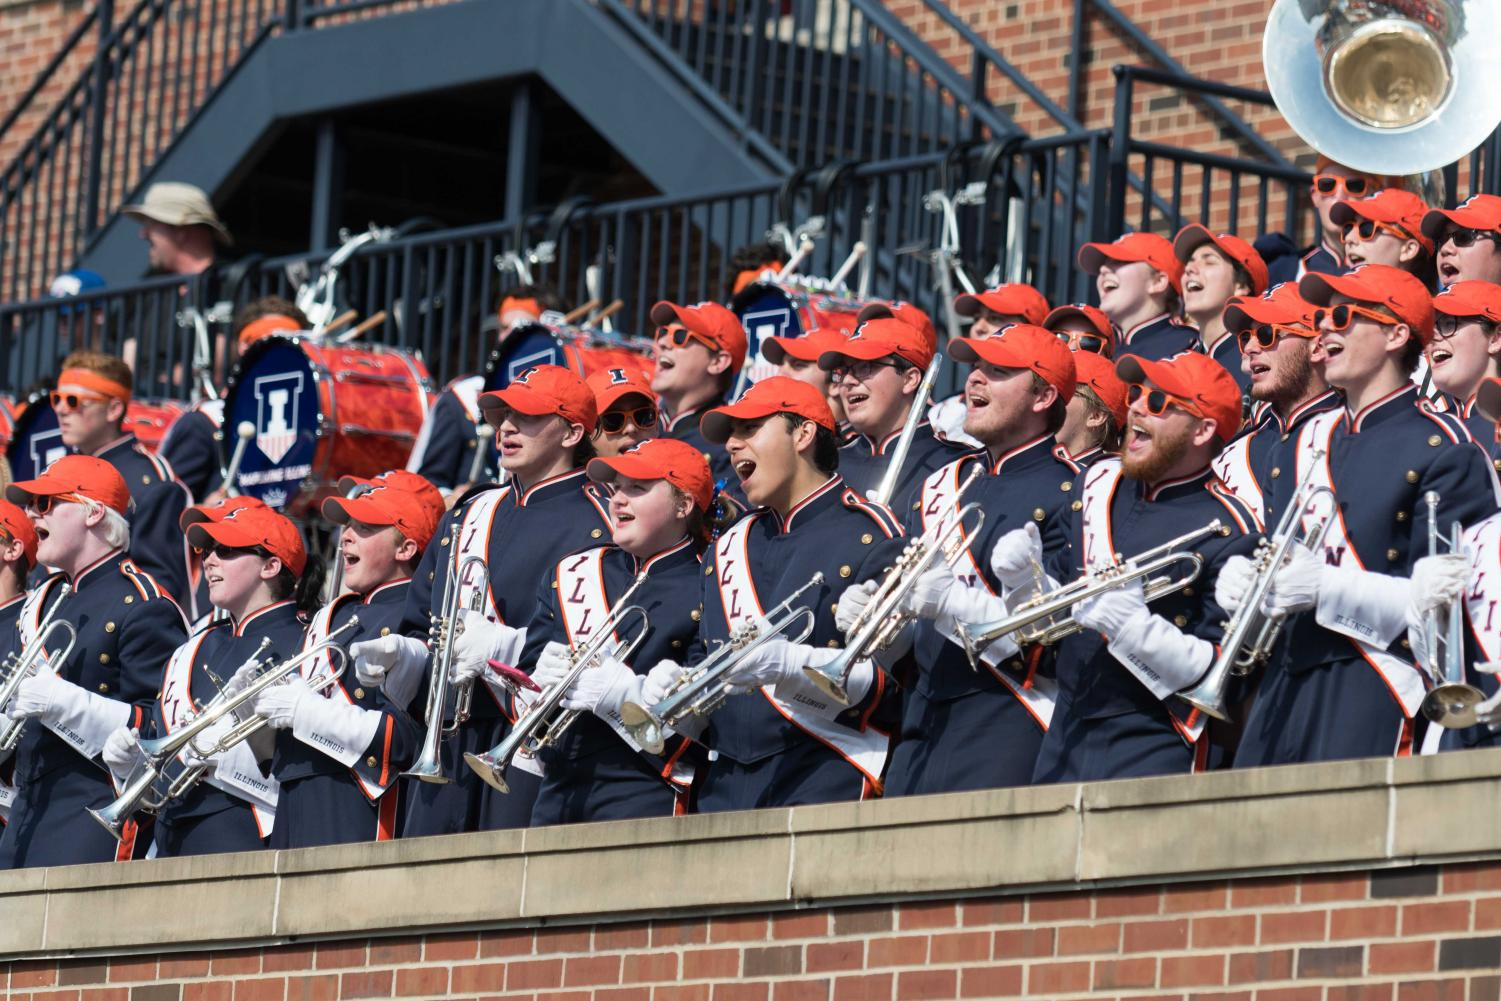 Members of the Marching Illini cheer during an Illinois football game. The band will perform during many events throughout Homecoming Week, including at the Homecoming Parade on Oct. 27 at 6 p.m. and the Illinois football game against Wisconsin on Oct. 28 at 11 a.m. The Marching Illini will also perform at an indoor show in the Krannert Center for the Performing Arts on Oct. 27 at 7:30 p.m. Tickets are $10 per person, $7 for seniors and $4 for University students. The event will also feature performances from the Illinois Wind Symphony and the Illinois Wind Orchestra.